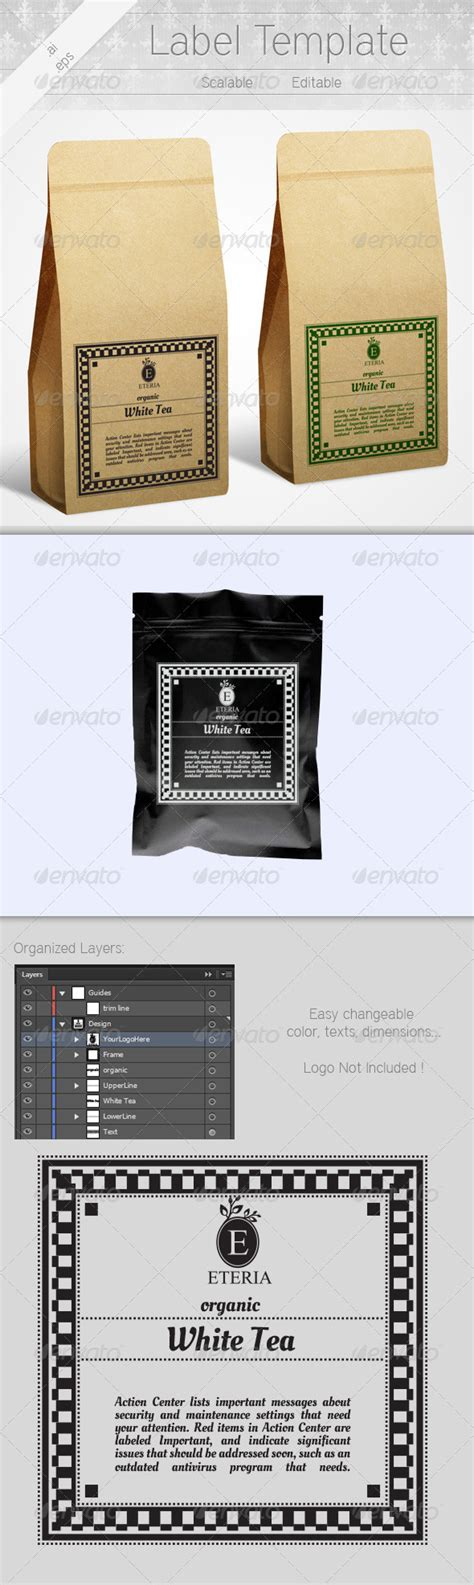 Vegetable Food Label 187 Tinkytyler Org Stock Photos Graphics Food Packaging Label Templates